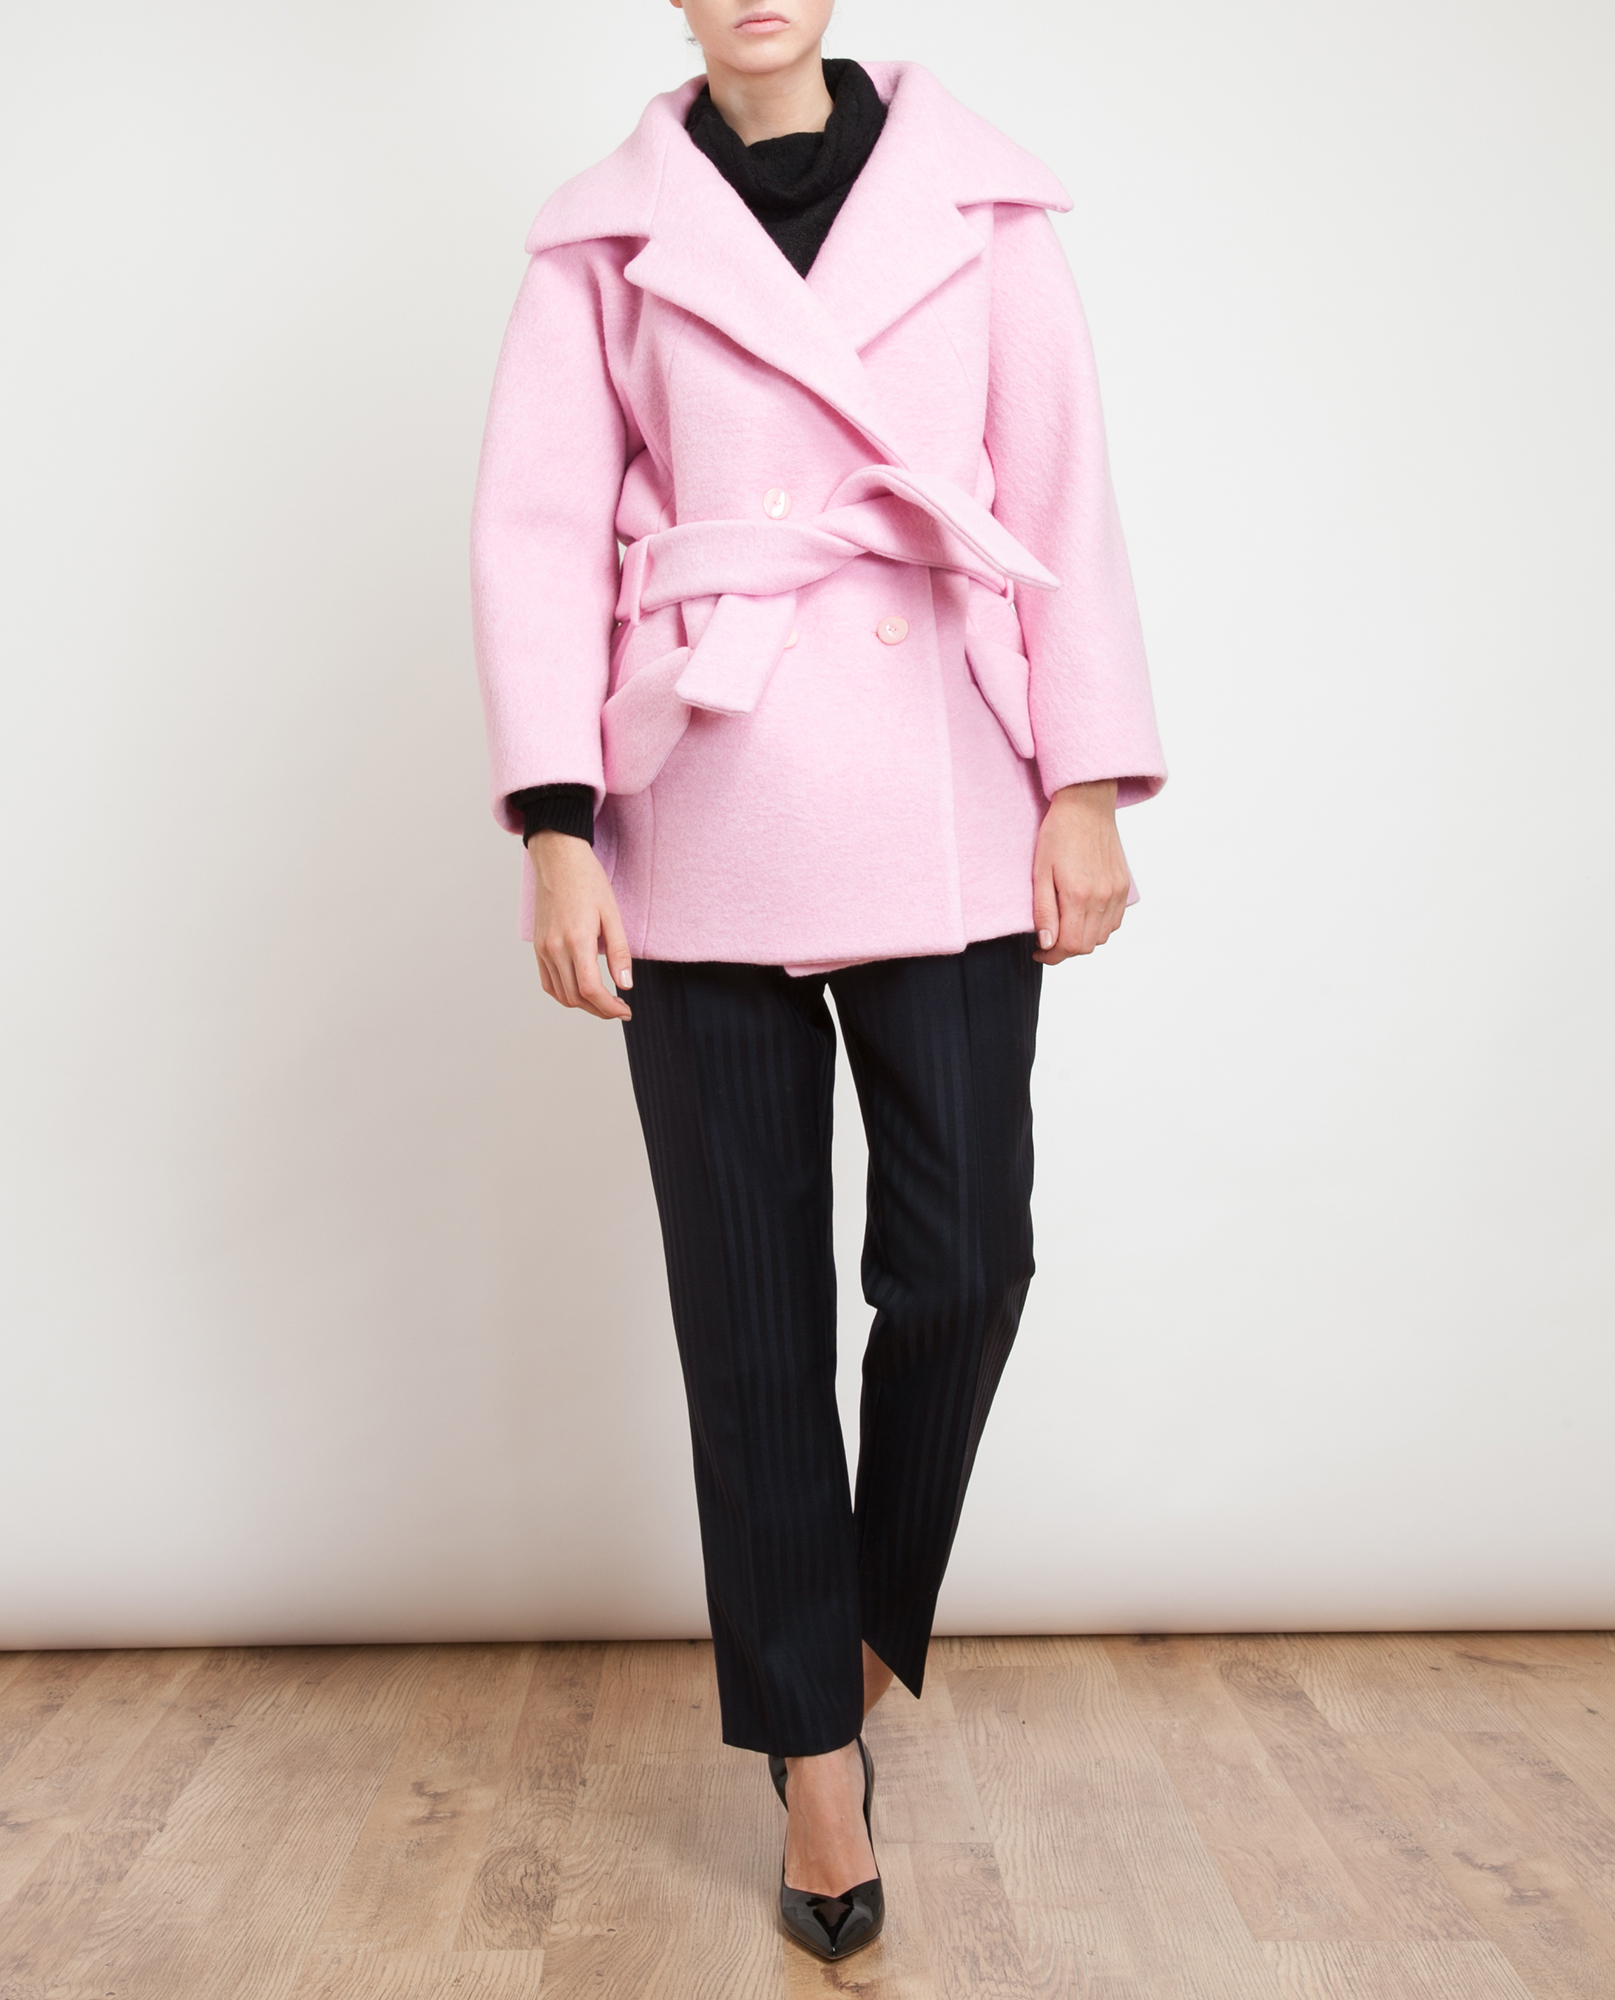 Carven Oversized Boiled Wool Coat in Pink | Lyst